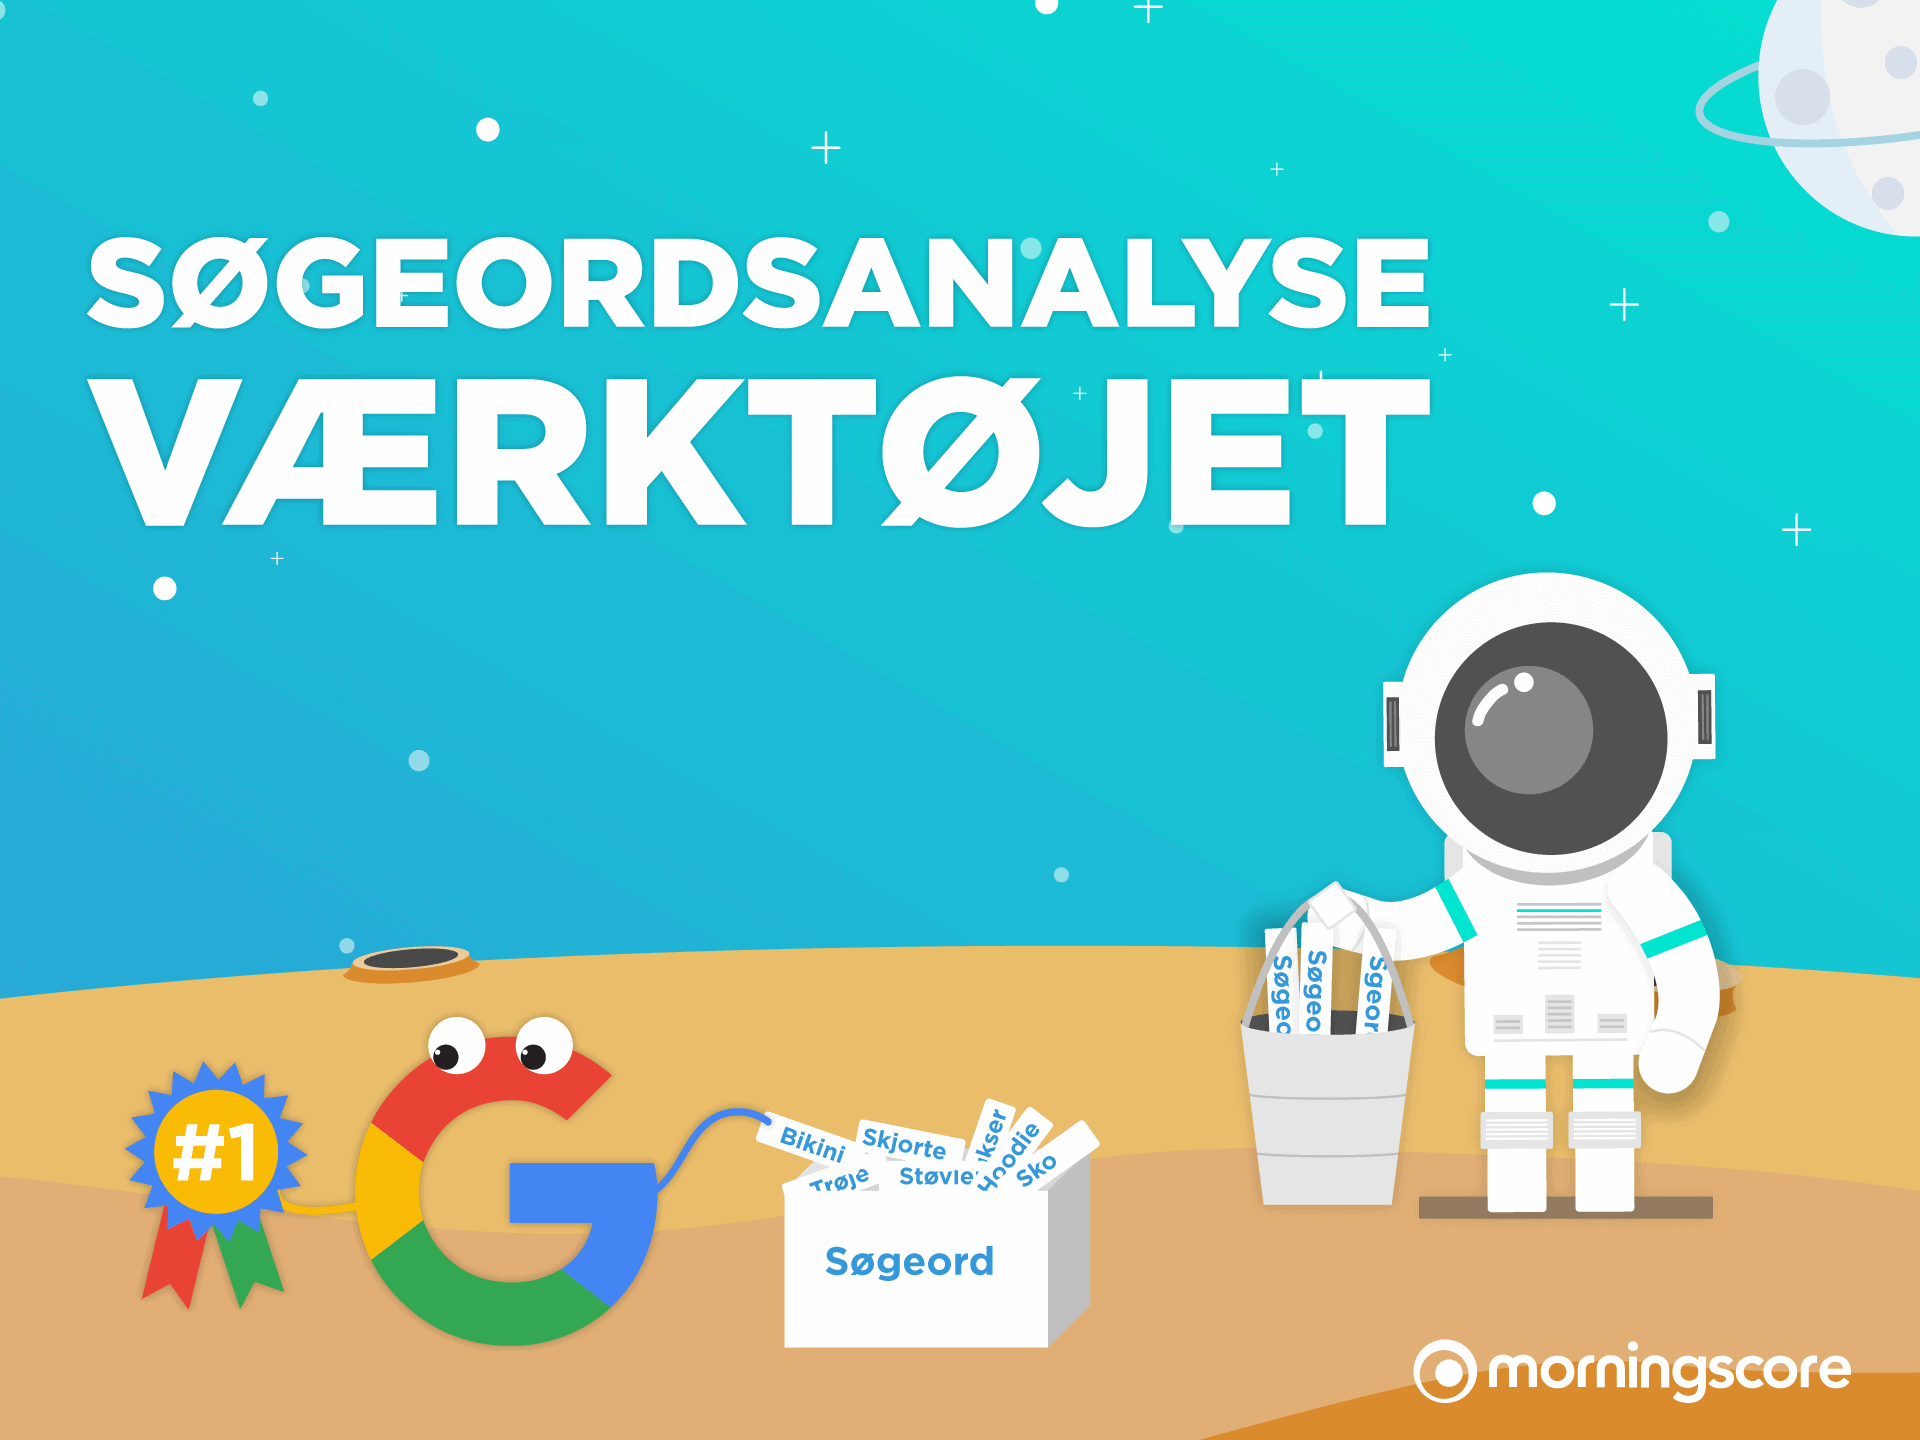 featured image morningscore er en søgeordsanalyse værktøj og keyword research tool